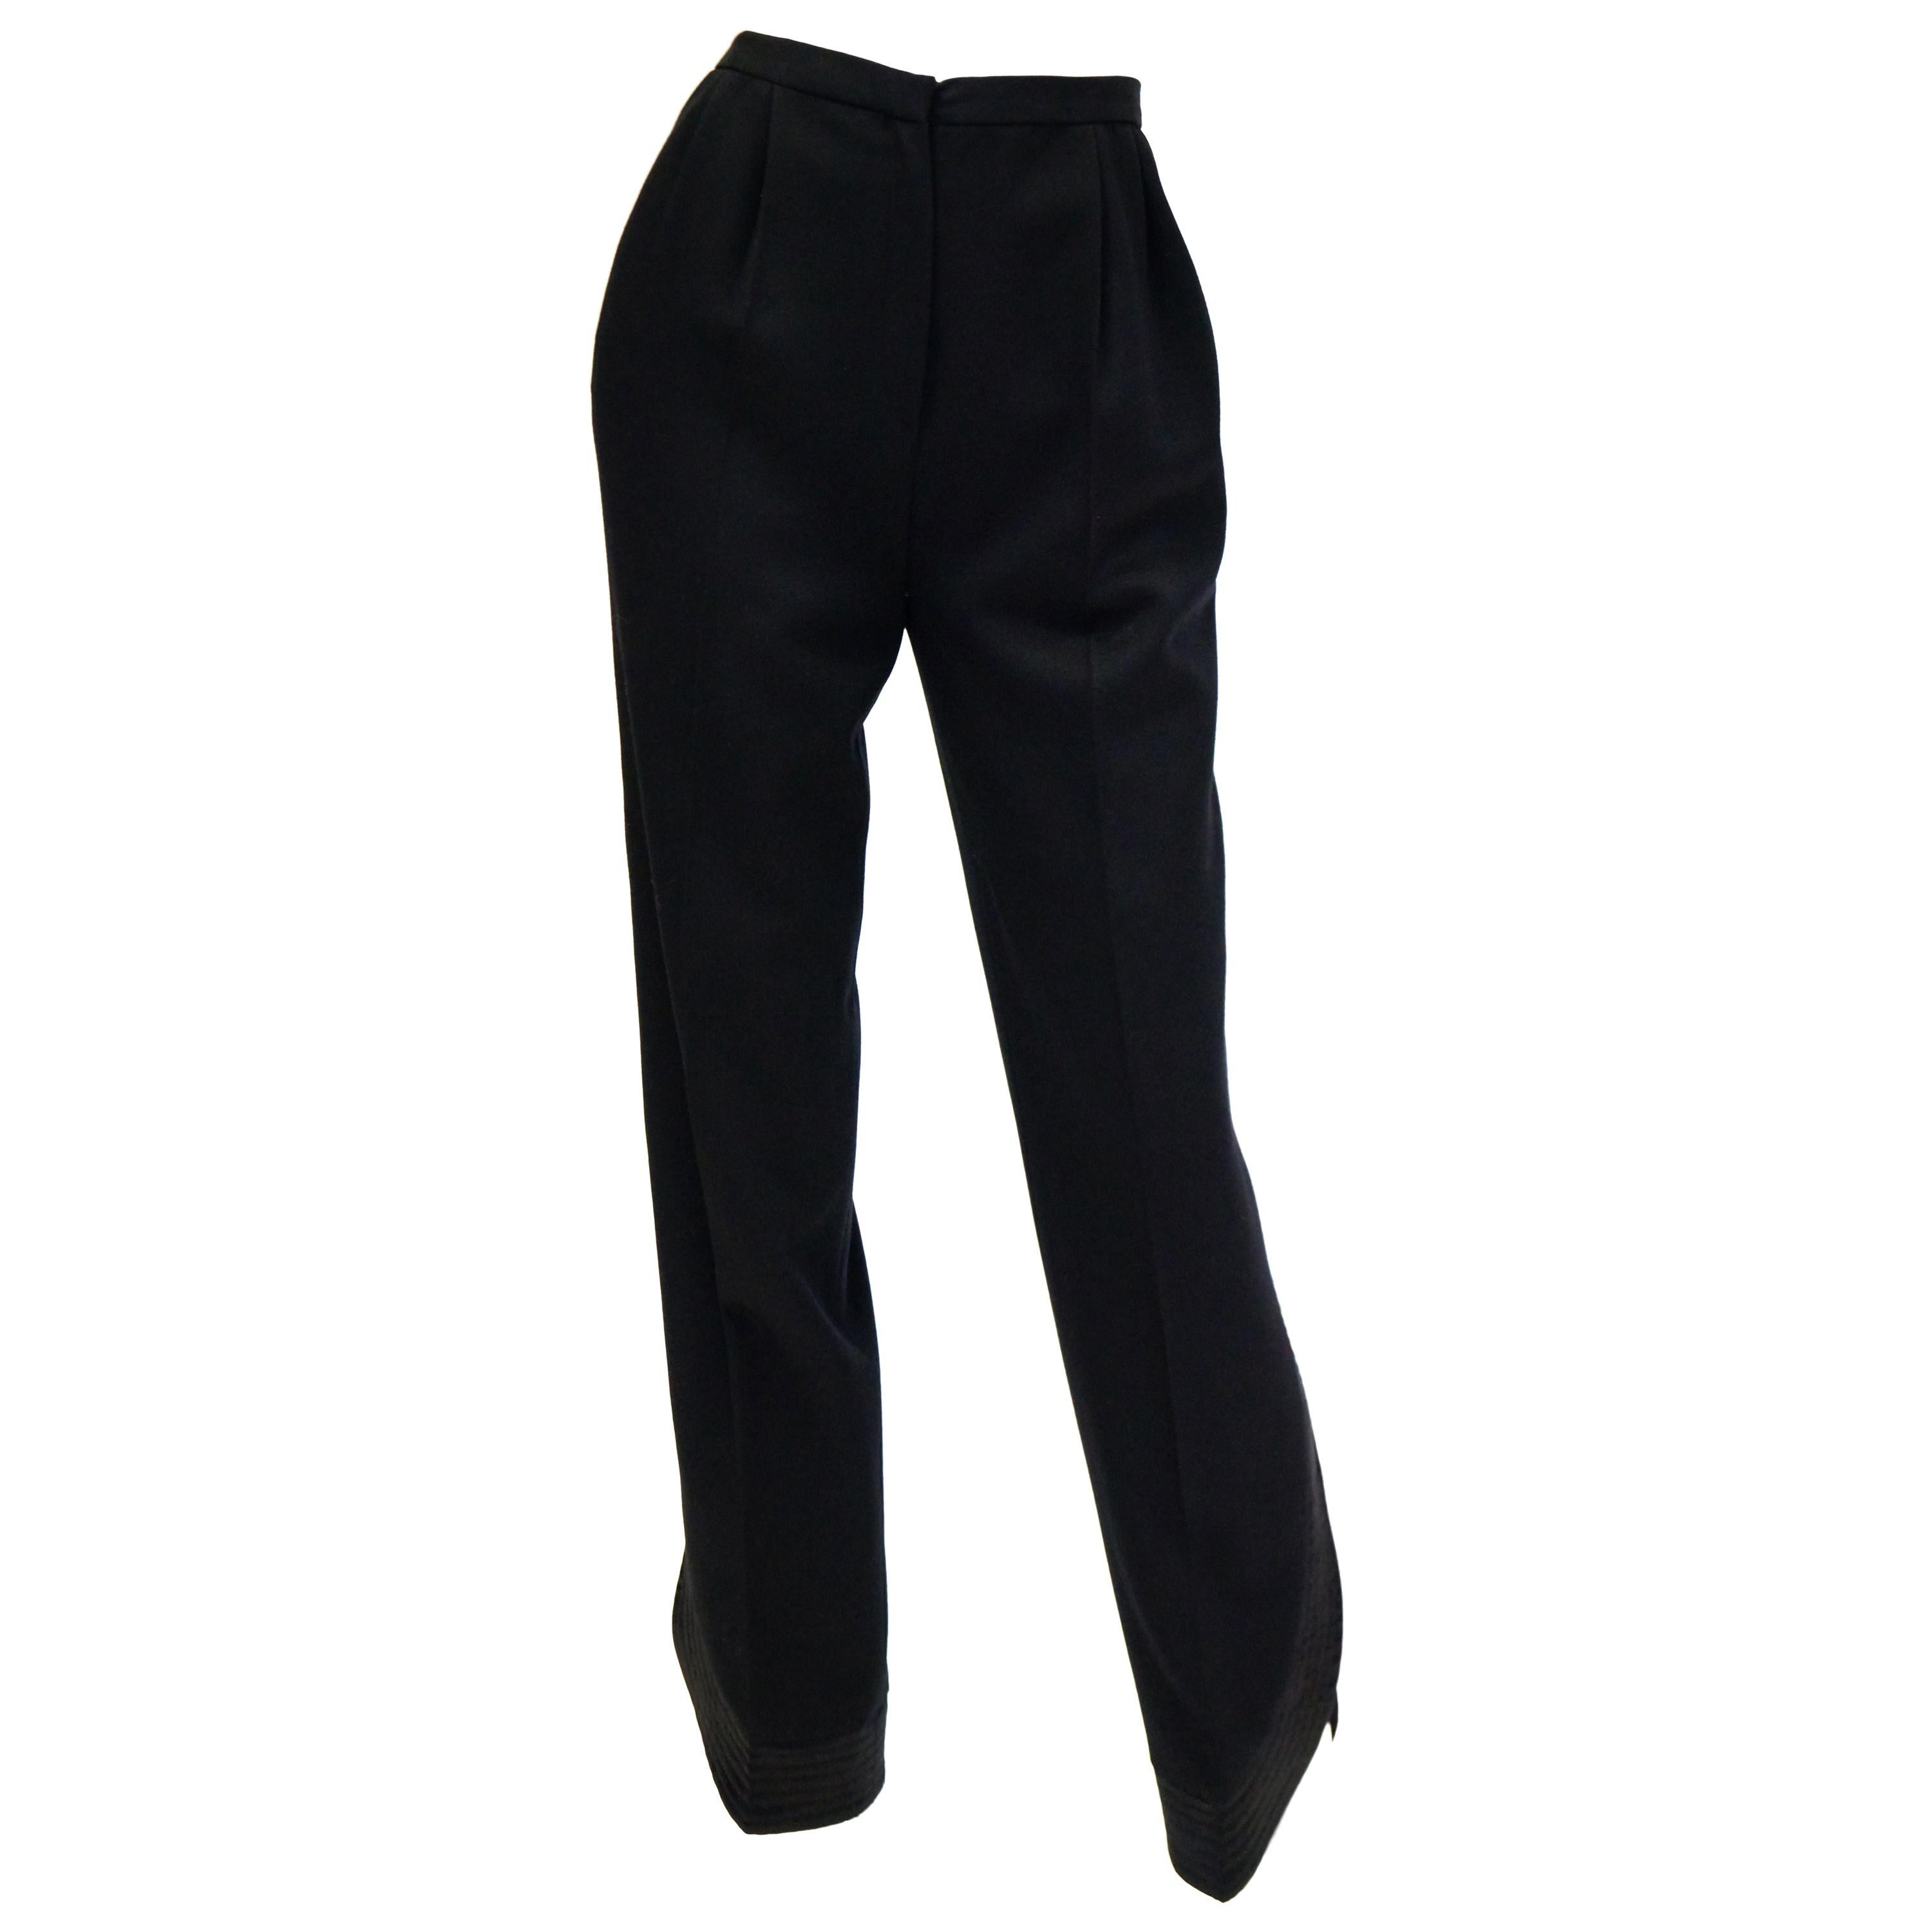 1980s Valentino Wool and Silk Tuxedo Trousers with Curved Slit